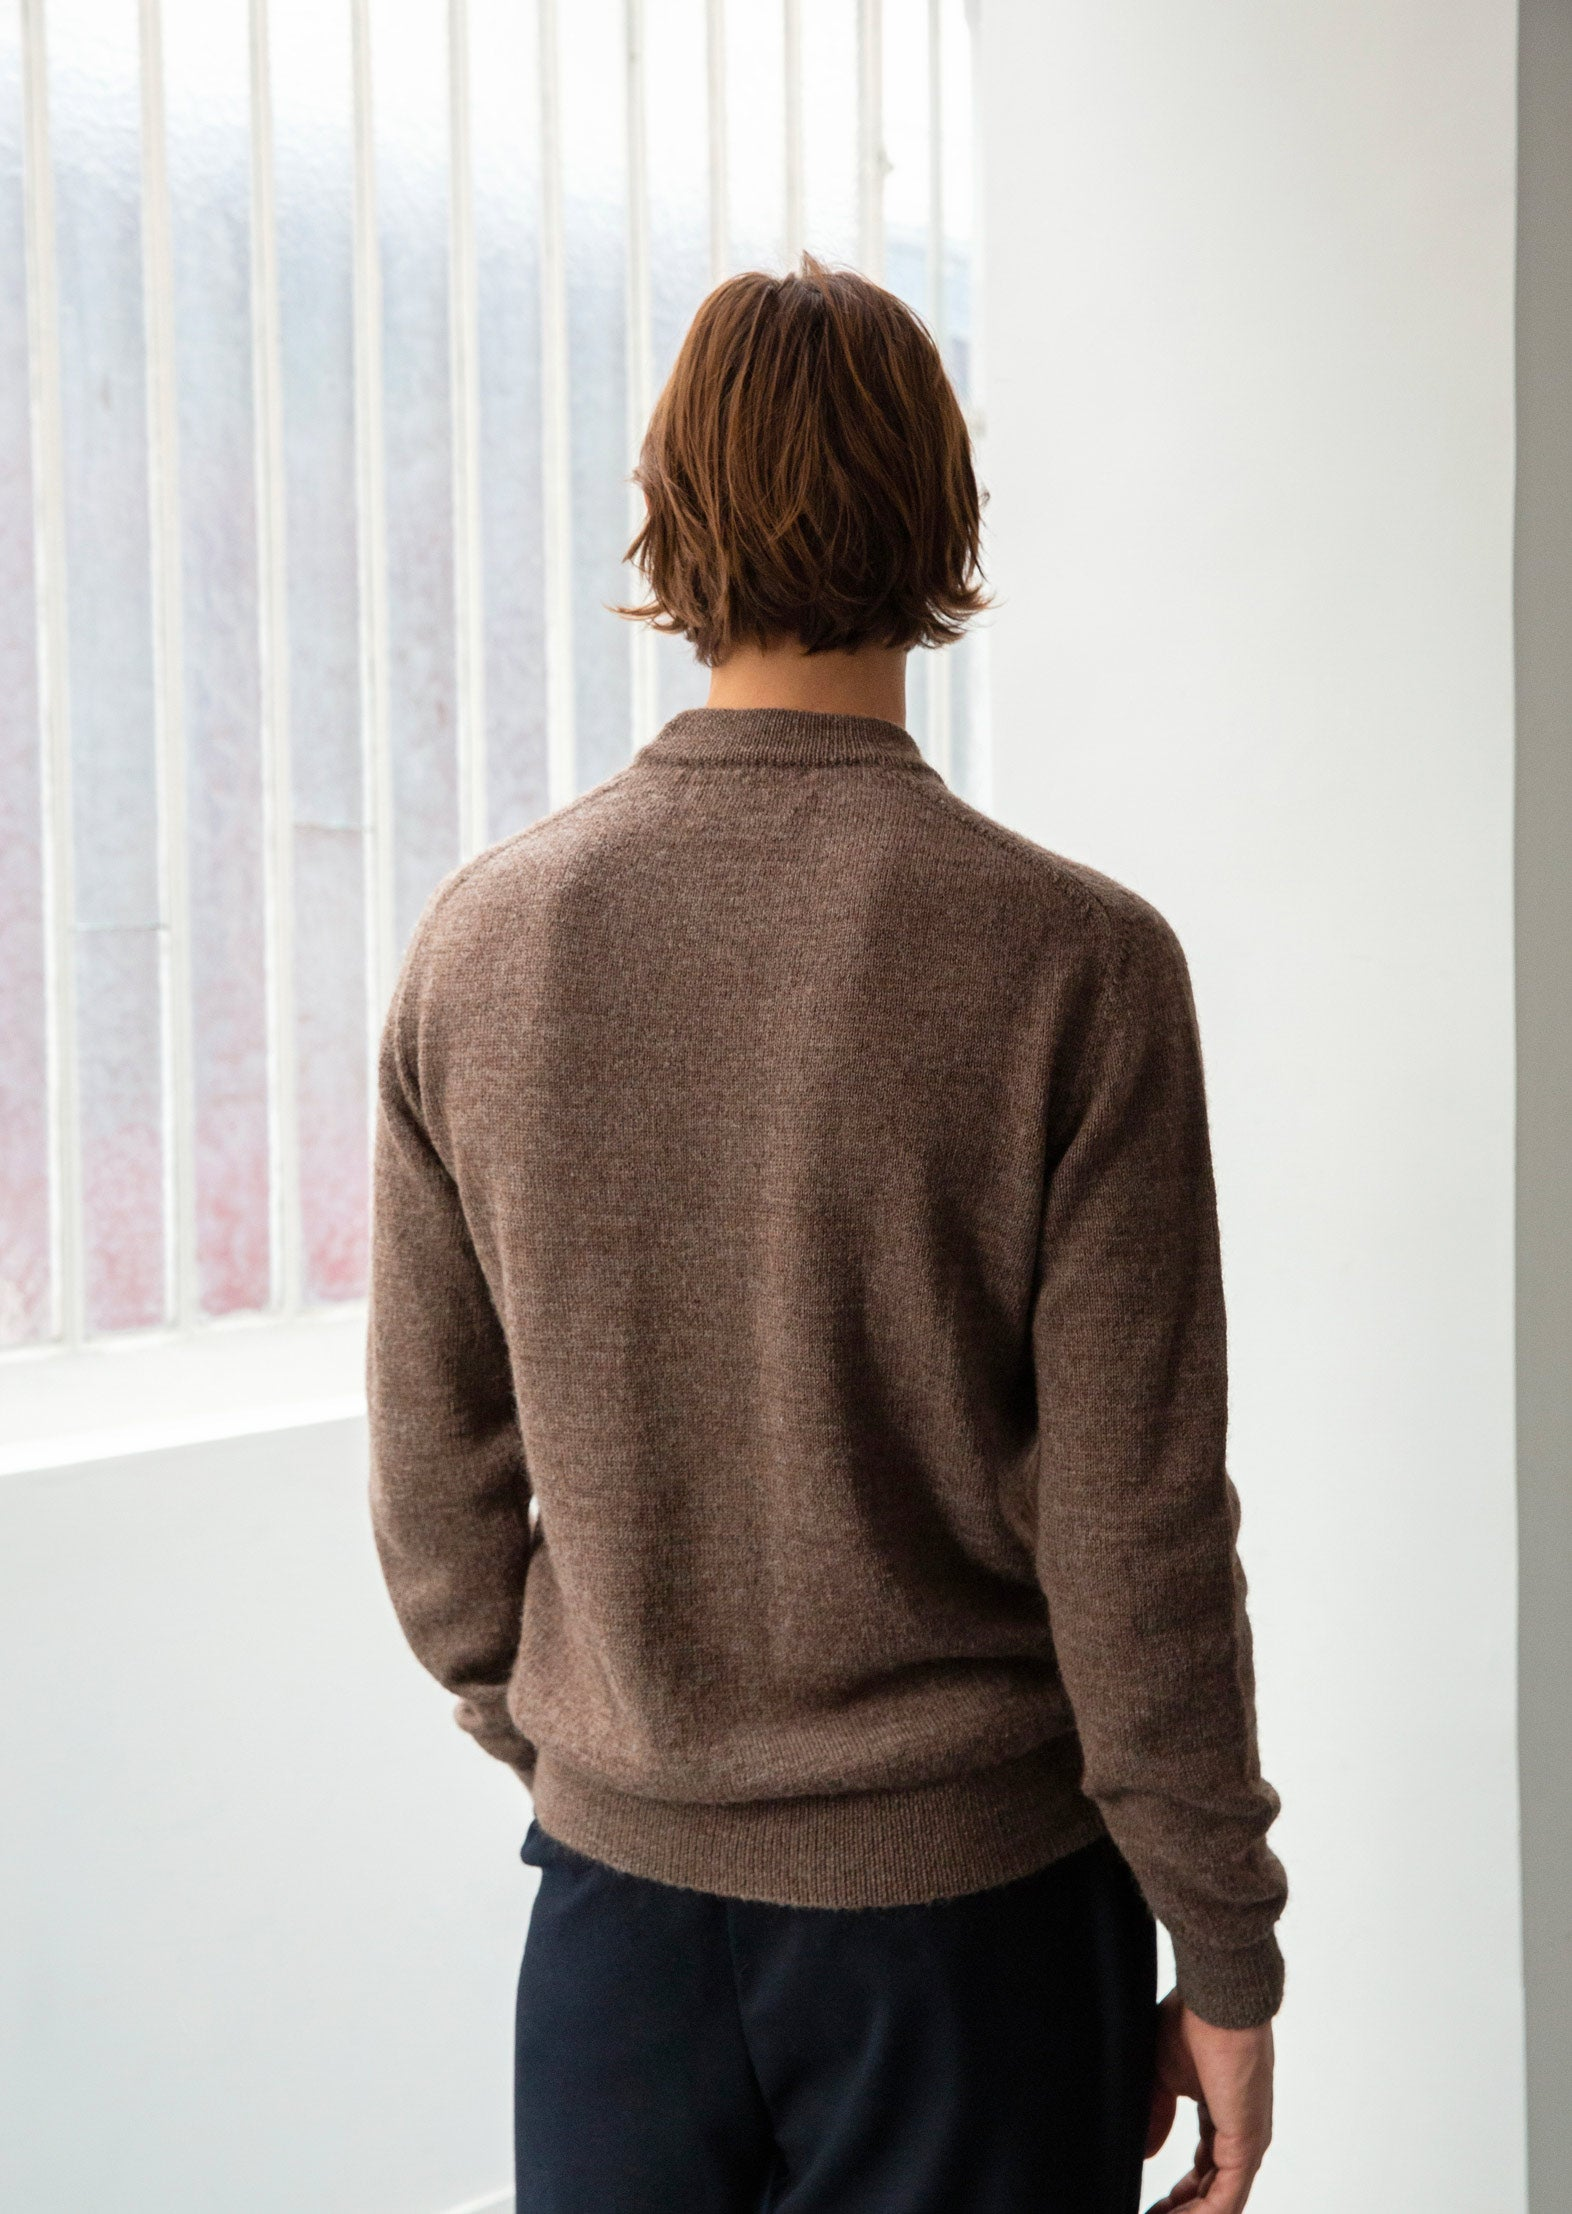 Mock neck sweater - Peruvian undyed superfine alpaca blend - Natural brown